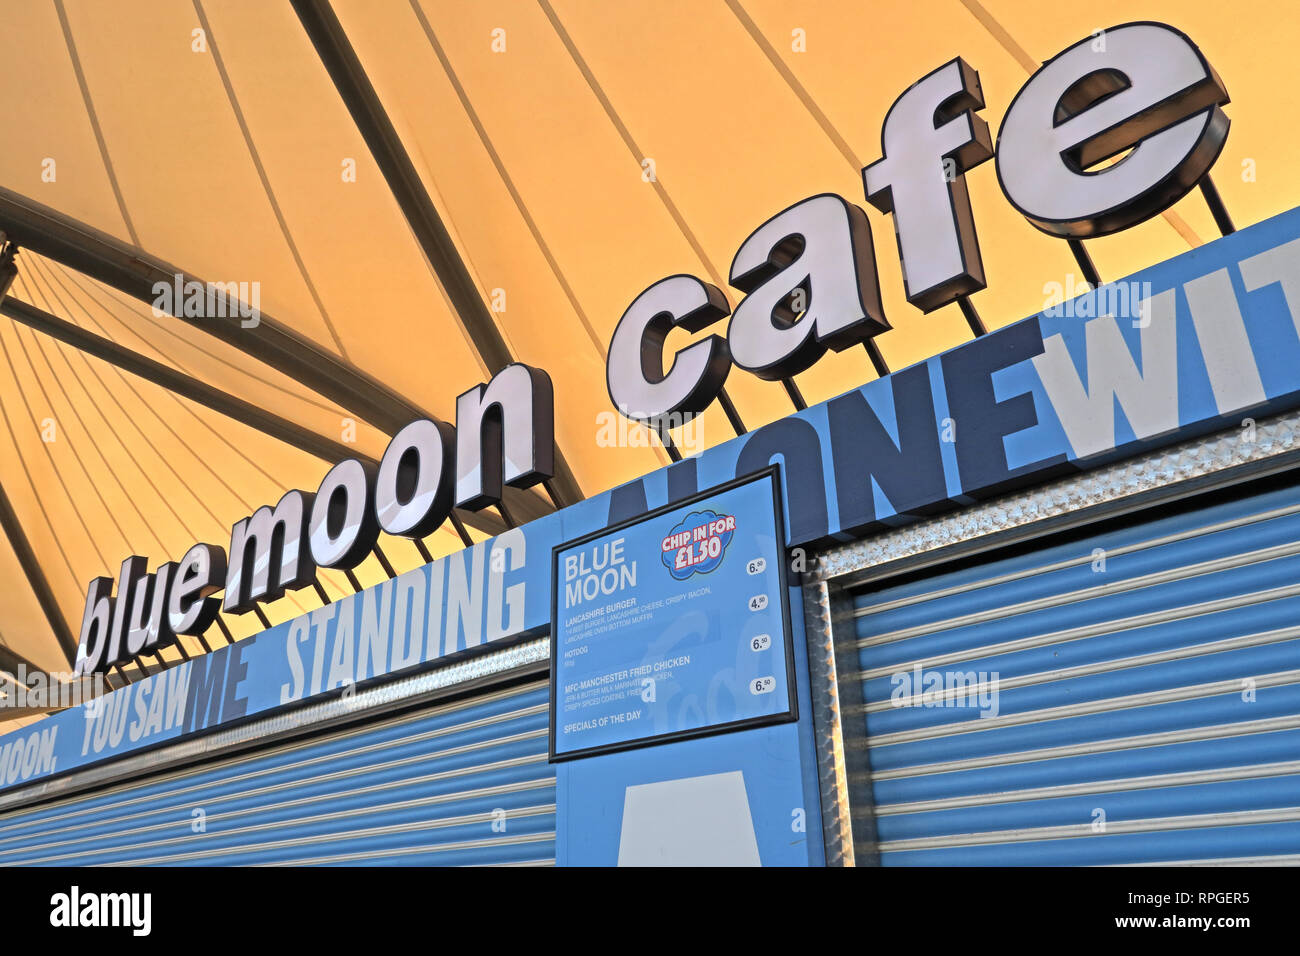 MCFC, Blue Moon Cafe, Etihad Stadium, Manchester City Football Club, North West England, UK - Stock Image